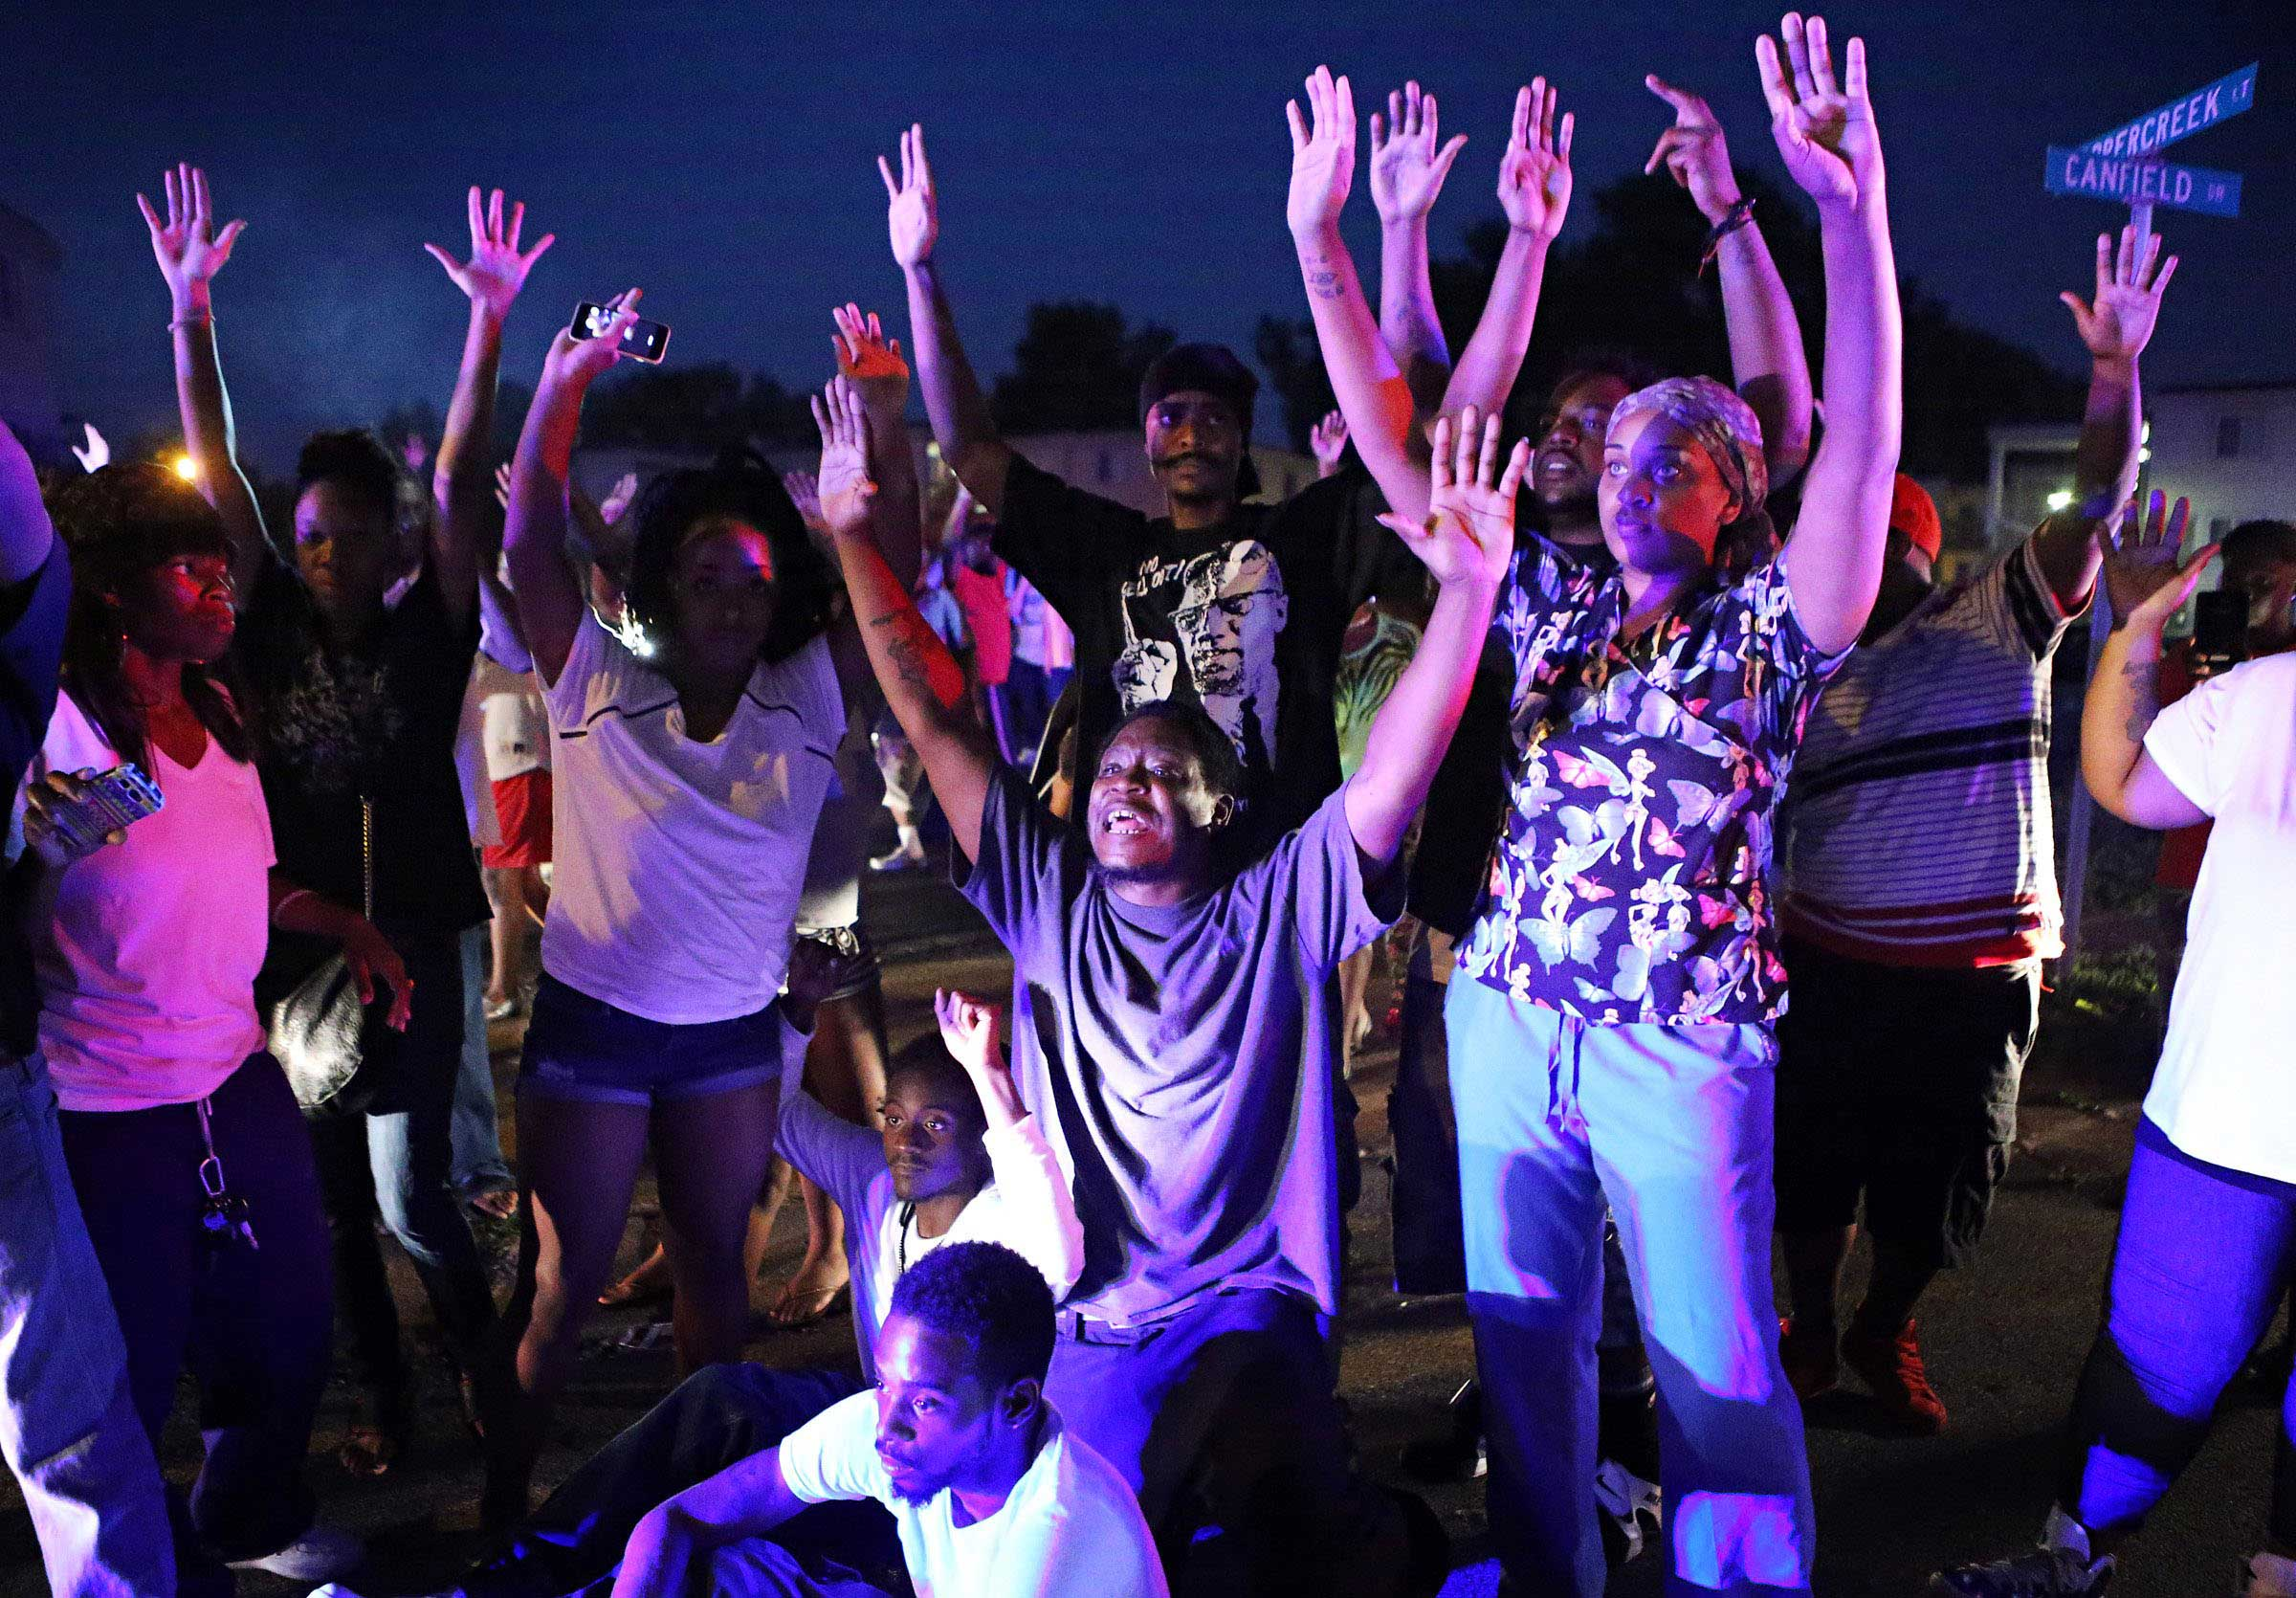 Aug. 9, 2014. A crowd gathers near the scene where 18-year-old Michael Brown was fatally shot by police in Ferguson, Mo., near St. Louis on Saturday. A spokesman with the St. Louis County Police Department confirmed a Ferguson police officer shot the man. The spokesman didn't give the reason for the shooting, nor provide the officer's name or race.